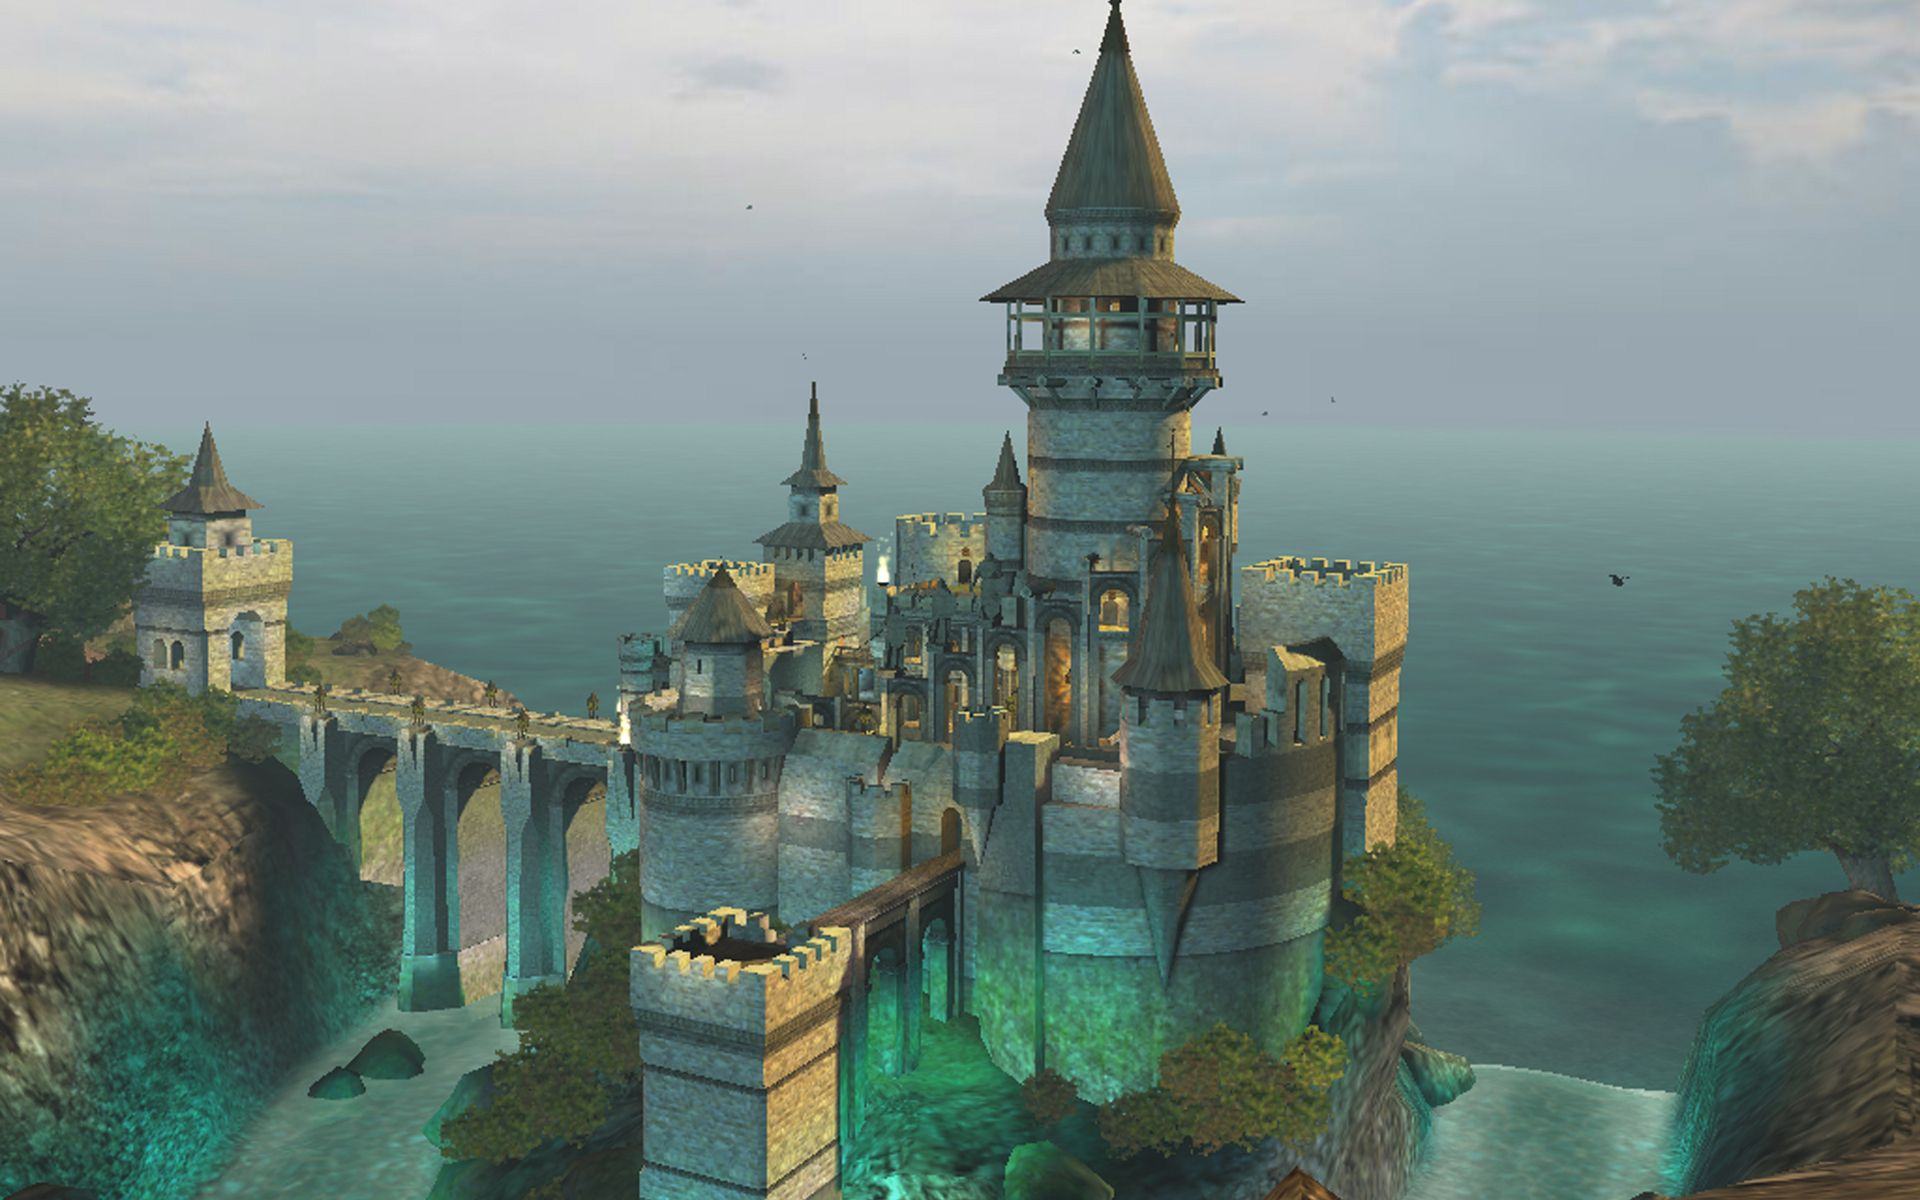 Castle Wallpaper HD is a hi res Wallpaper for pc desktopslaptops or 1920x1200